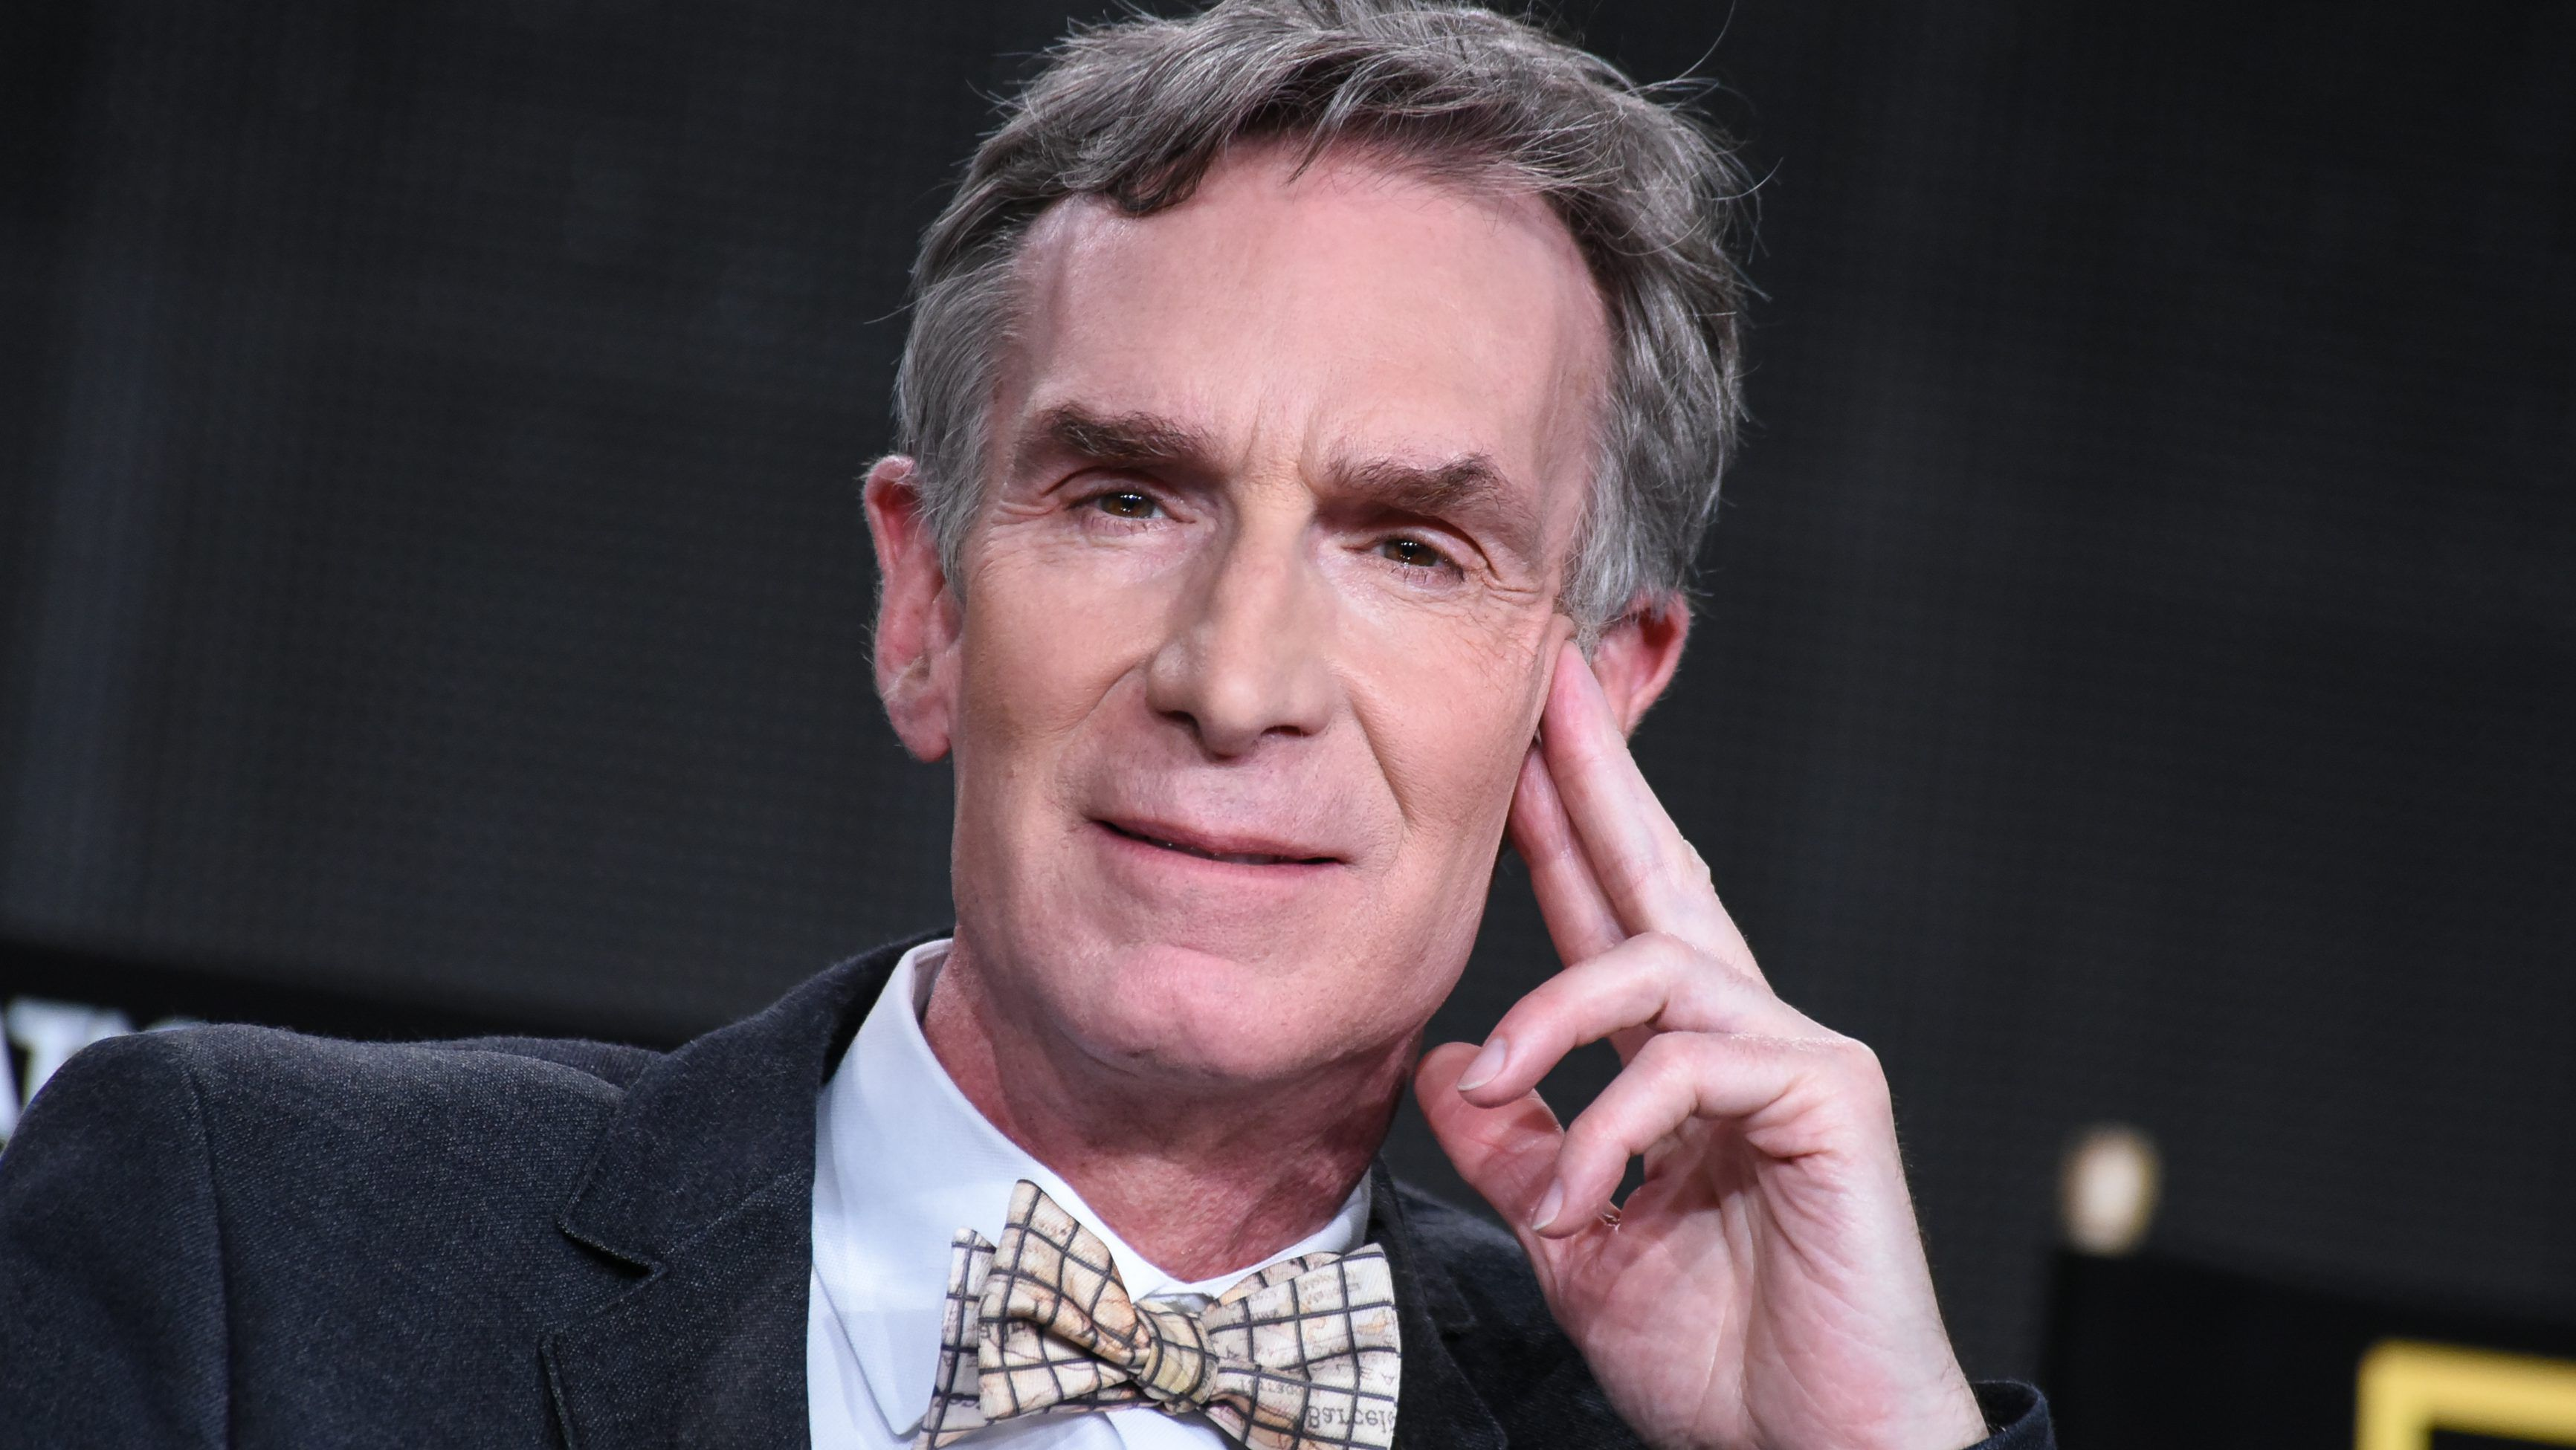 bill nye on philosophy the science guy says he has changed his mind